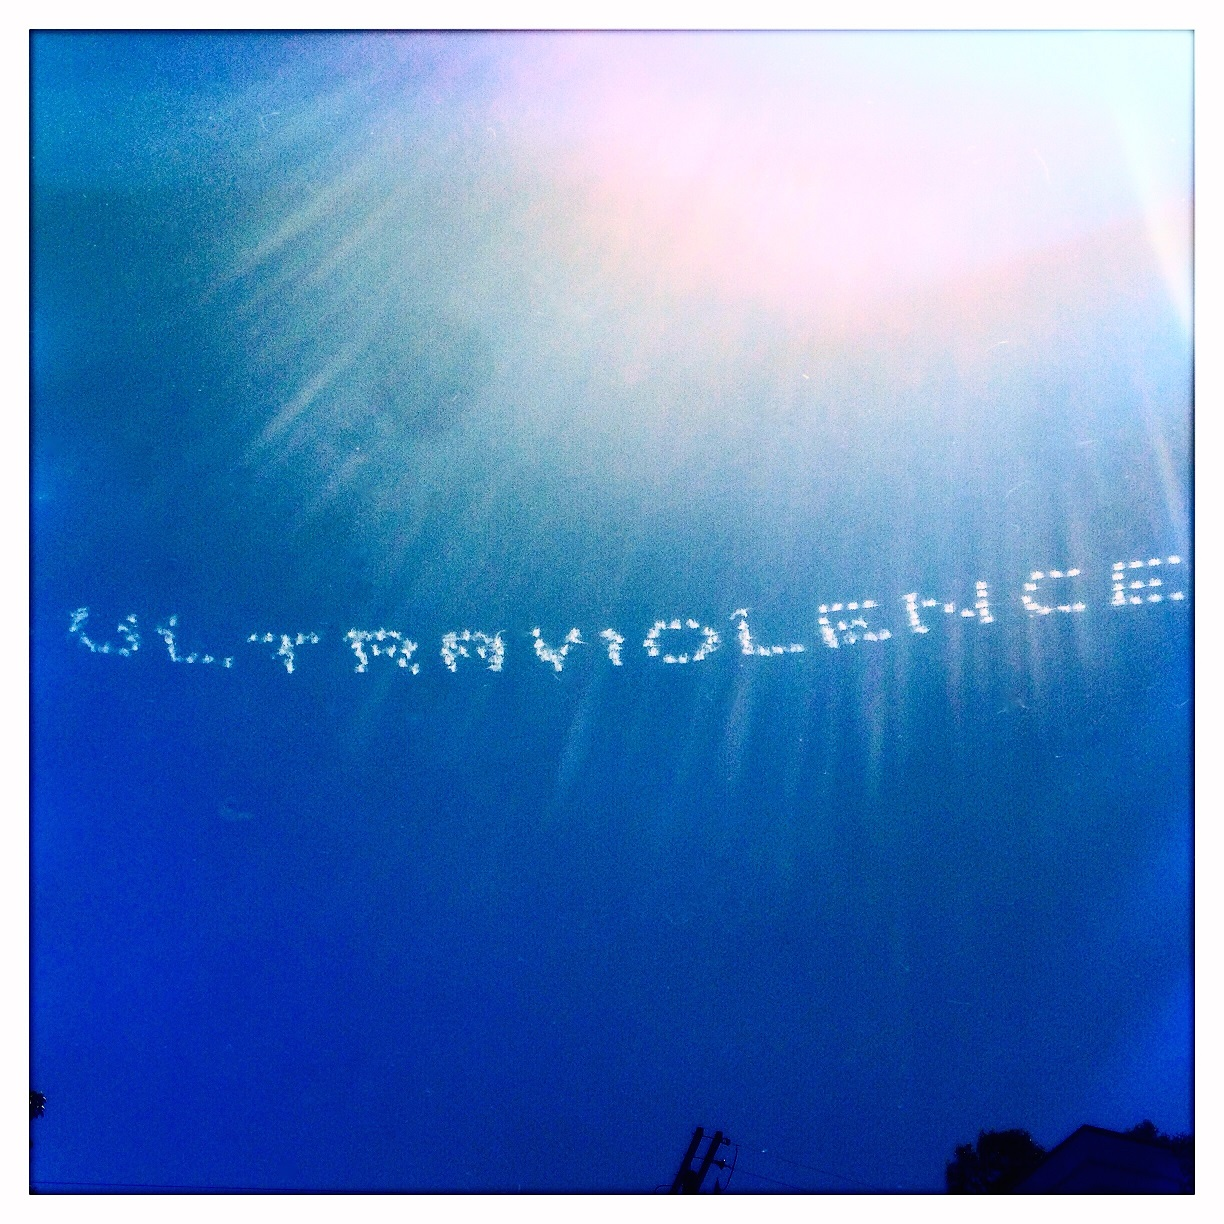 Ultraviolence in Blue, 2014